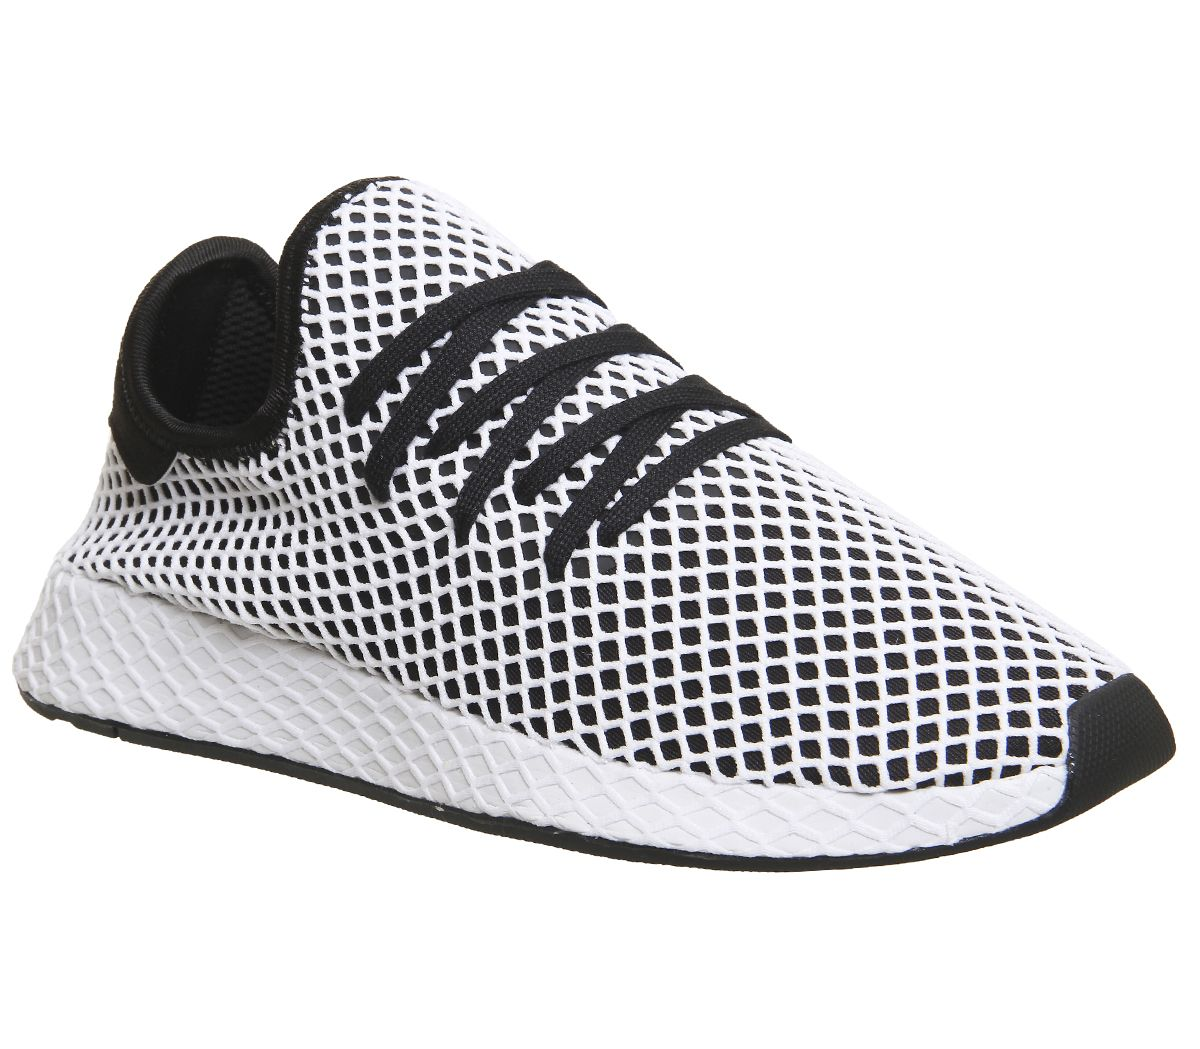 9be3776d4 adidas Deerupt Trainers Core Black White - Unisex Sports